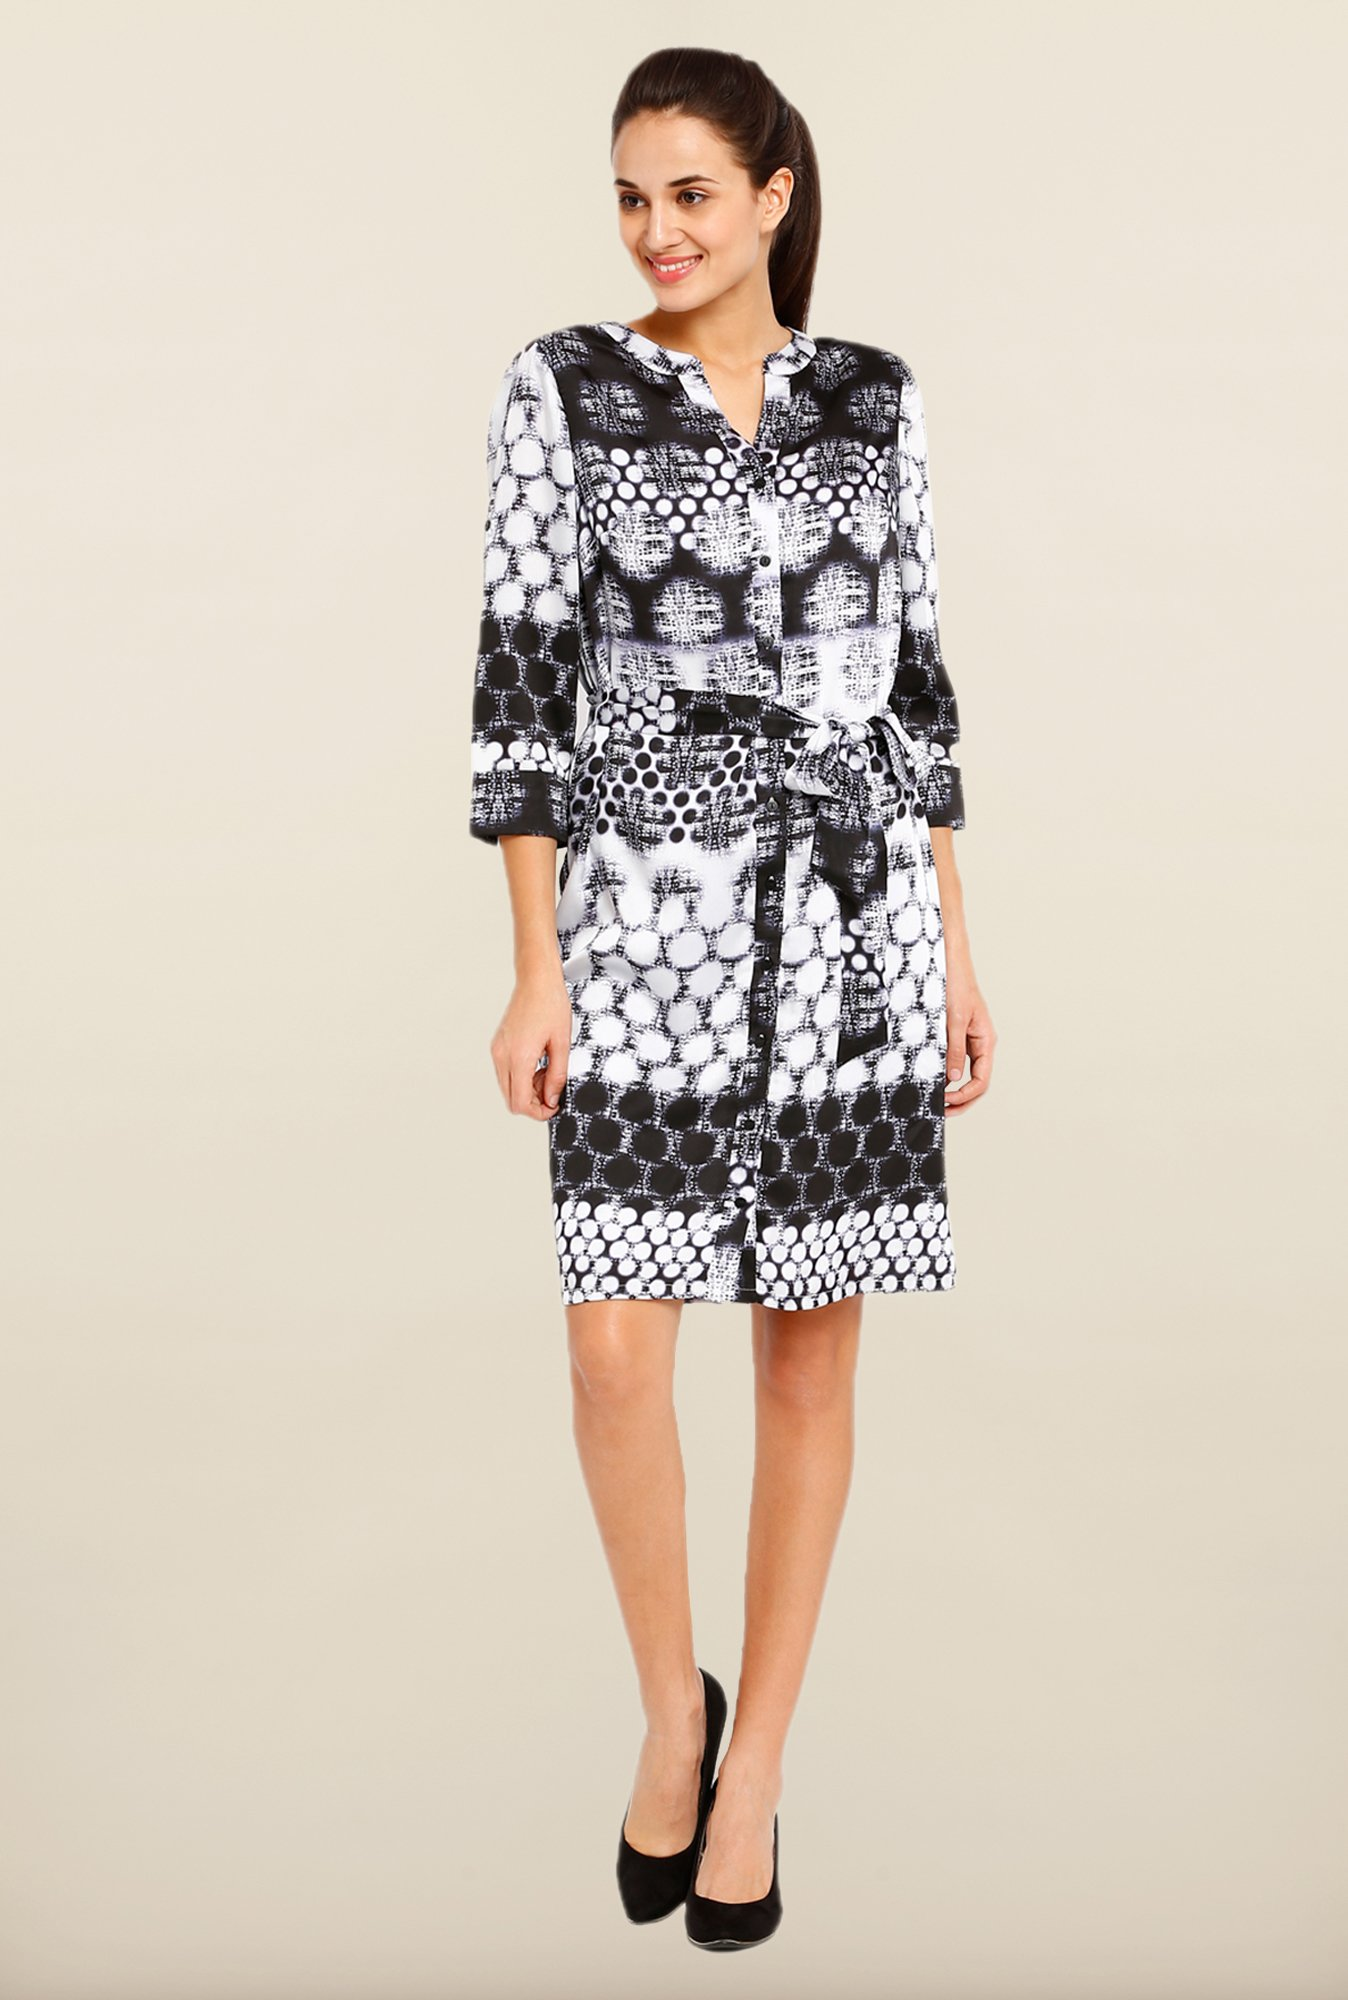 Avirate Black & White Printed Shirt Dress